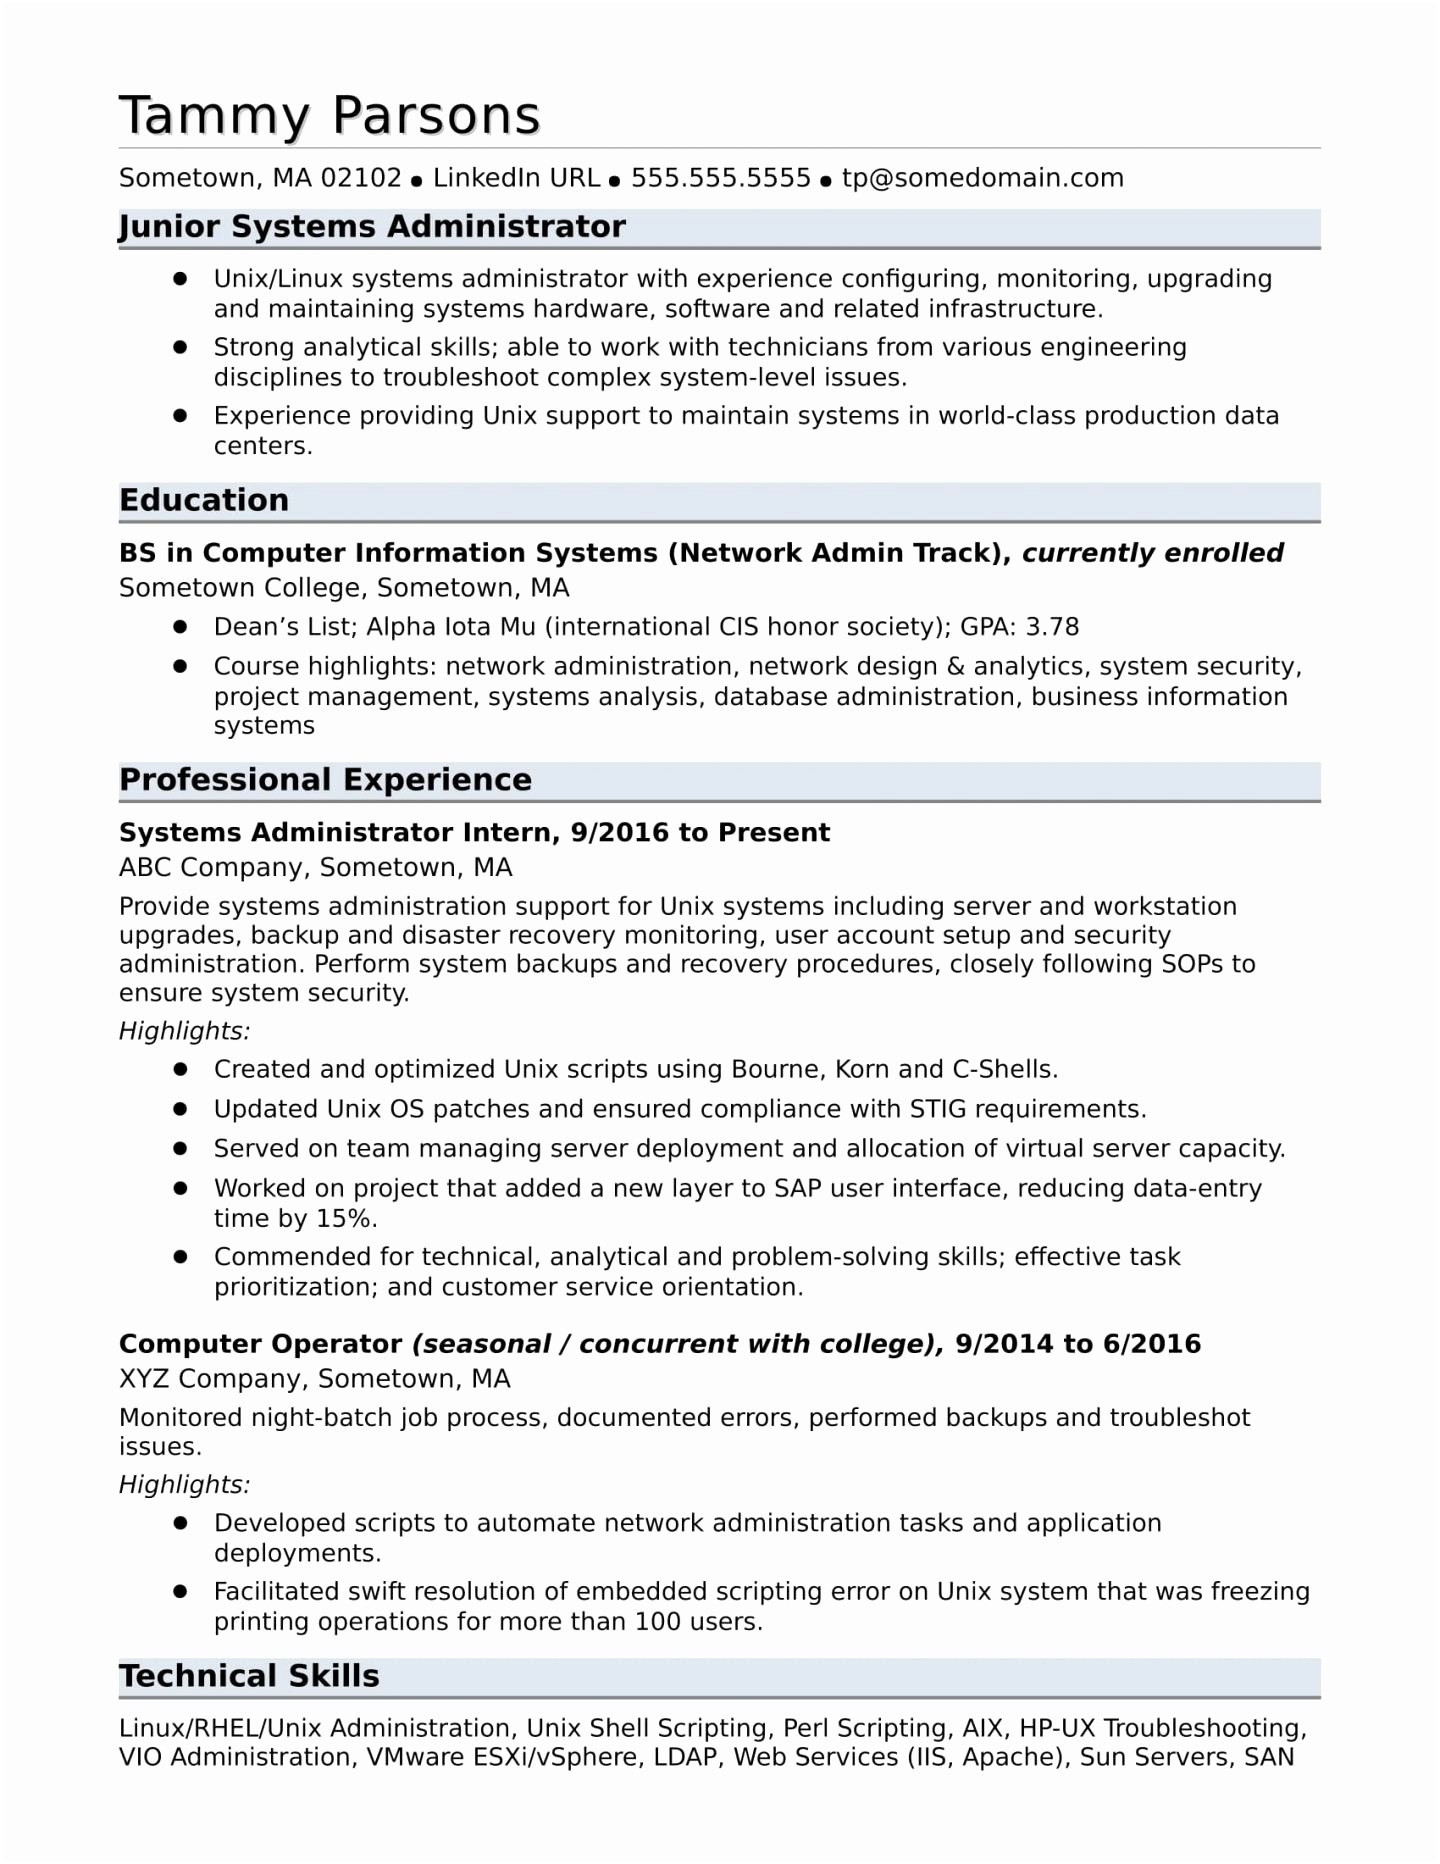 System Administrator Resume Template - Junior Web Developer Resume Utd Resume Template Unique Fishing